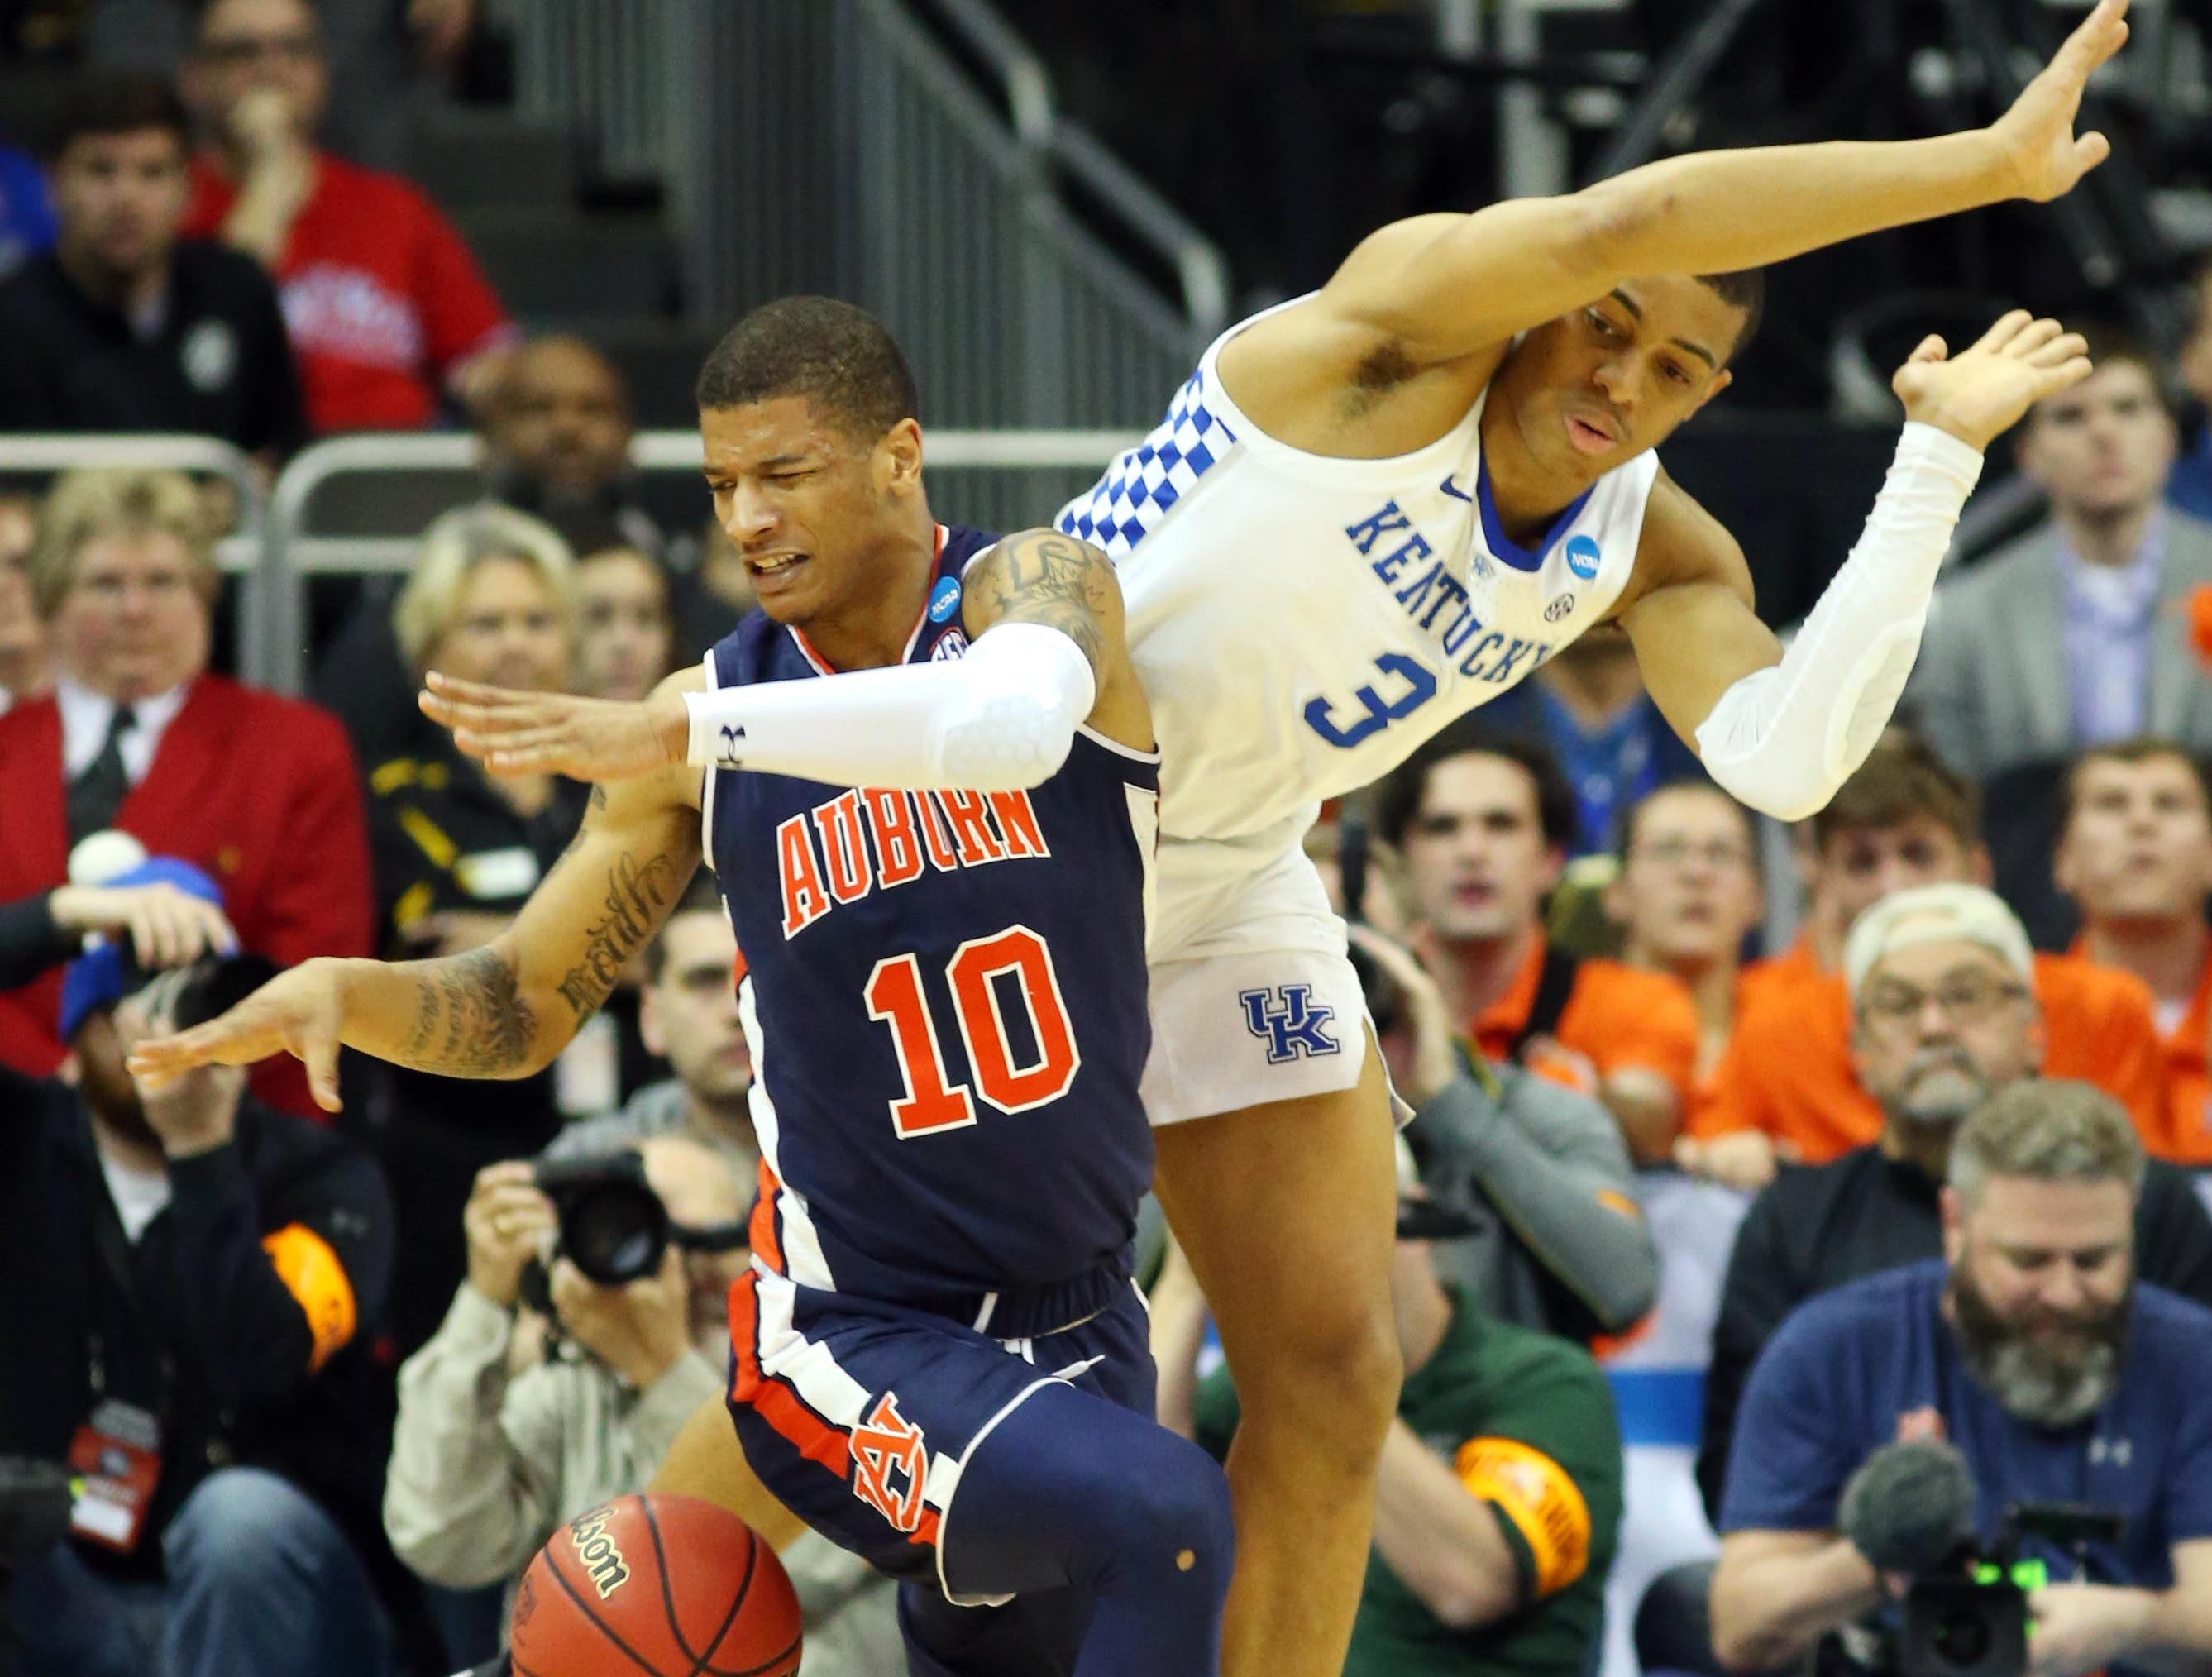 Mar 31, 2019; Kansas City, MO, United States; Auburn Tigers guard Samir Doughty (10) collides with Kentucky Wildcats guard Keldon Johnson (3) during the second half in the championship game of the midwest regional of the 2019 NCAA Tournament at Sprint Center. Mandatory Credit: Jay Biggerstaff-USA TODAY Sports